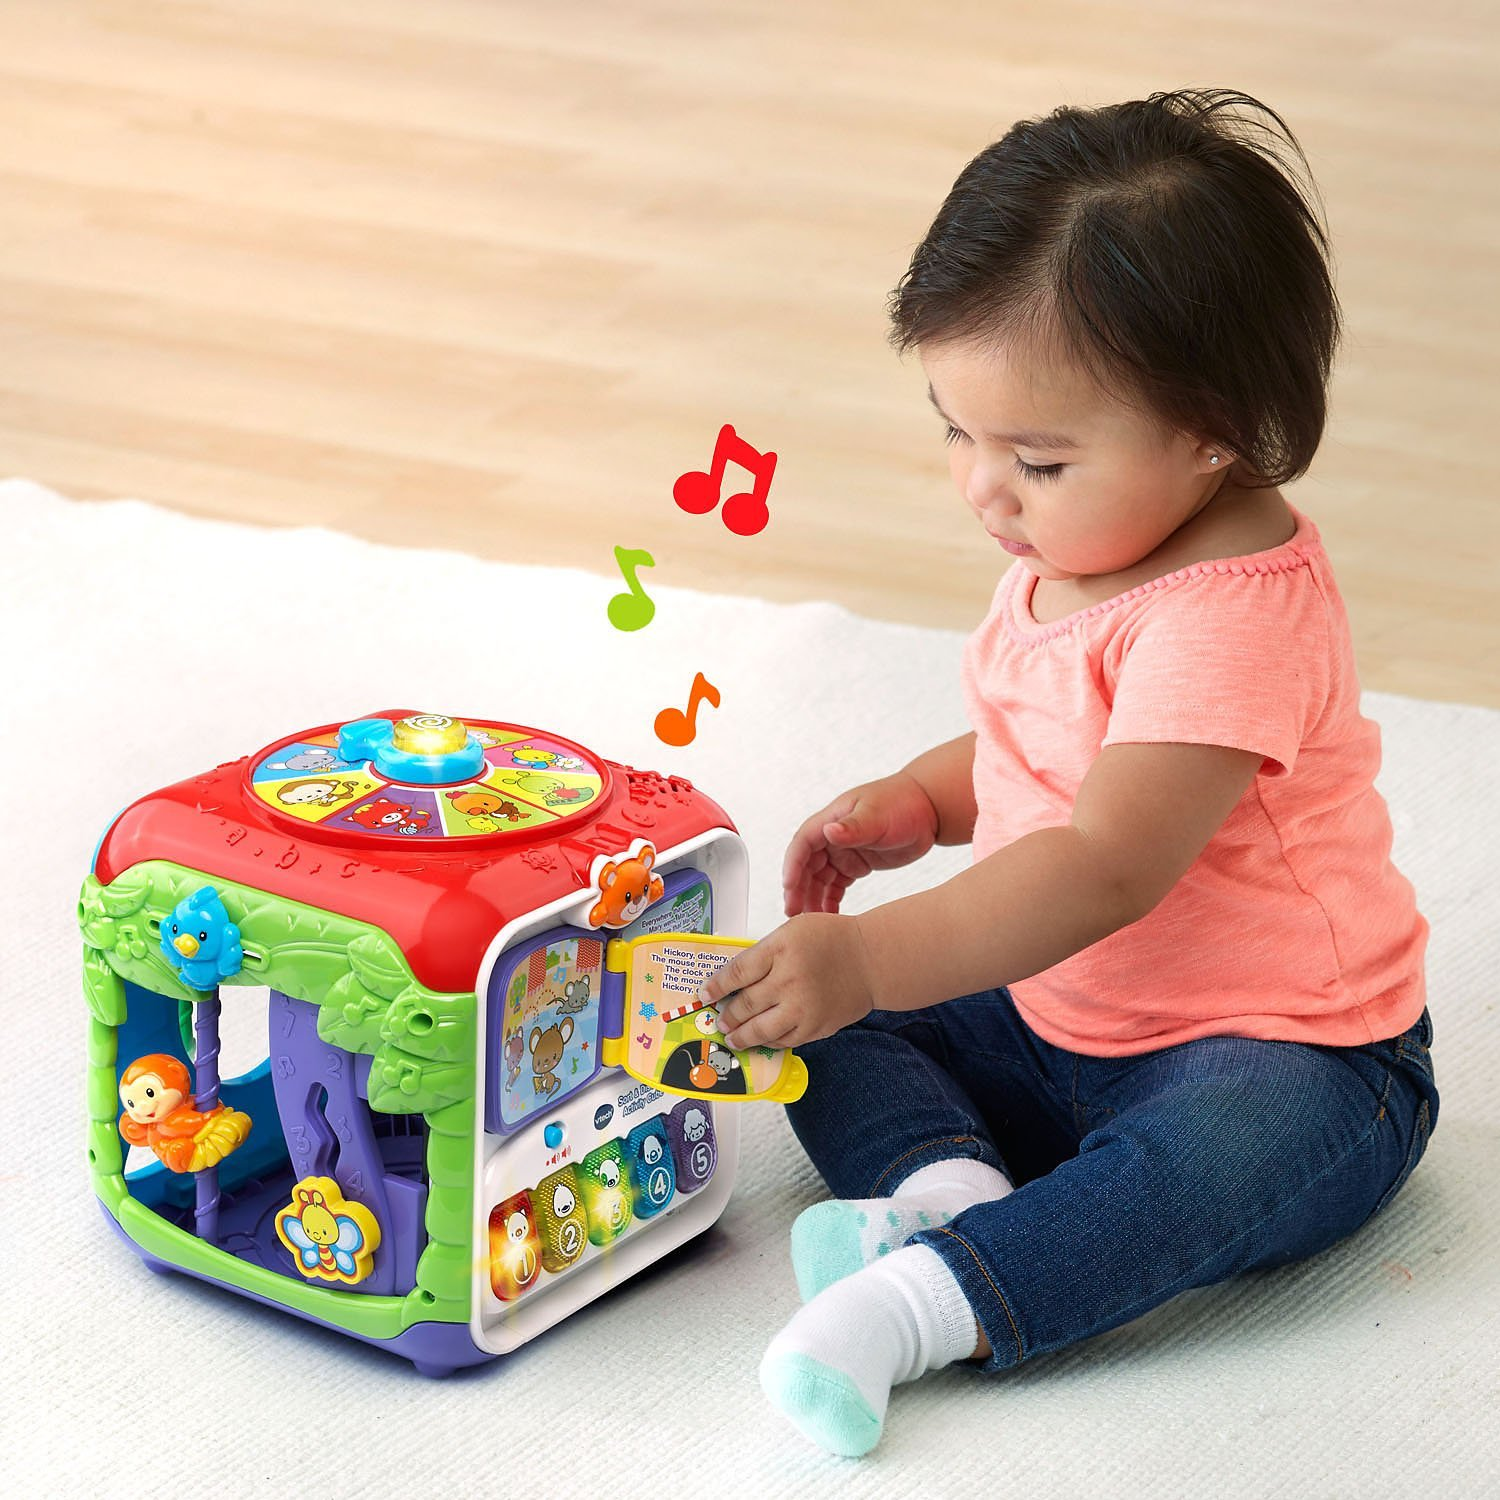 VTech Sort and Discover Activity Cube Toddlers